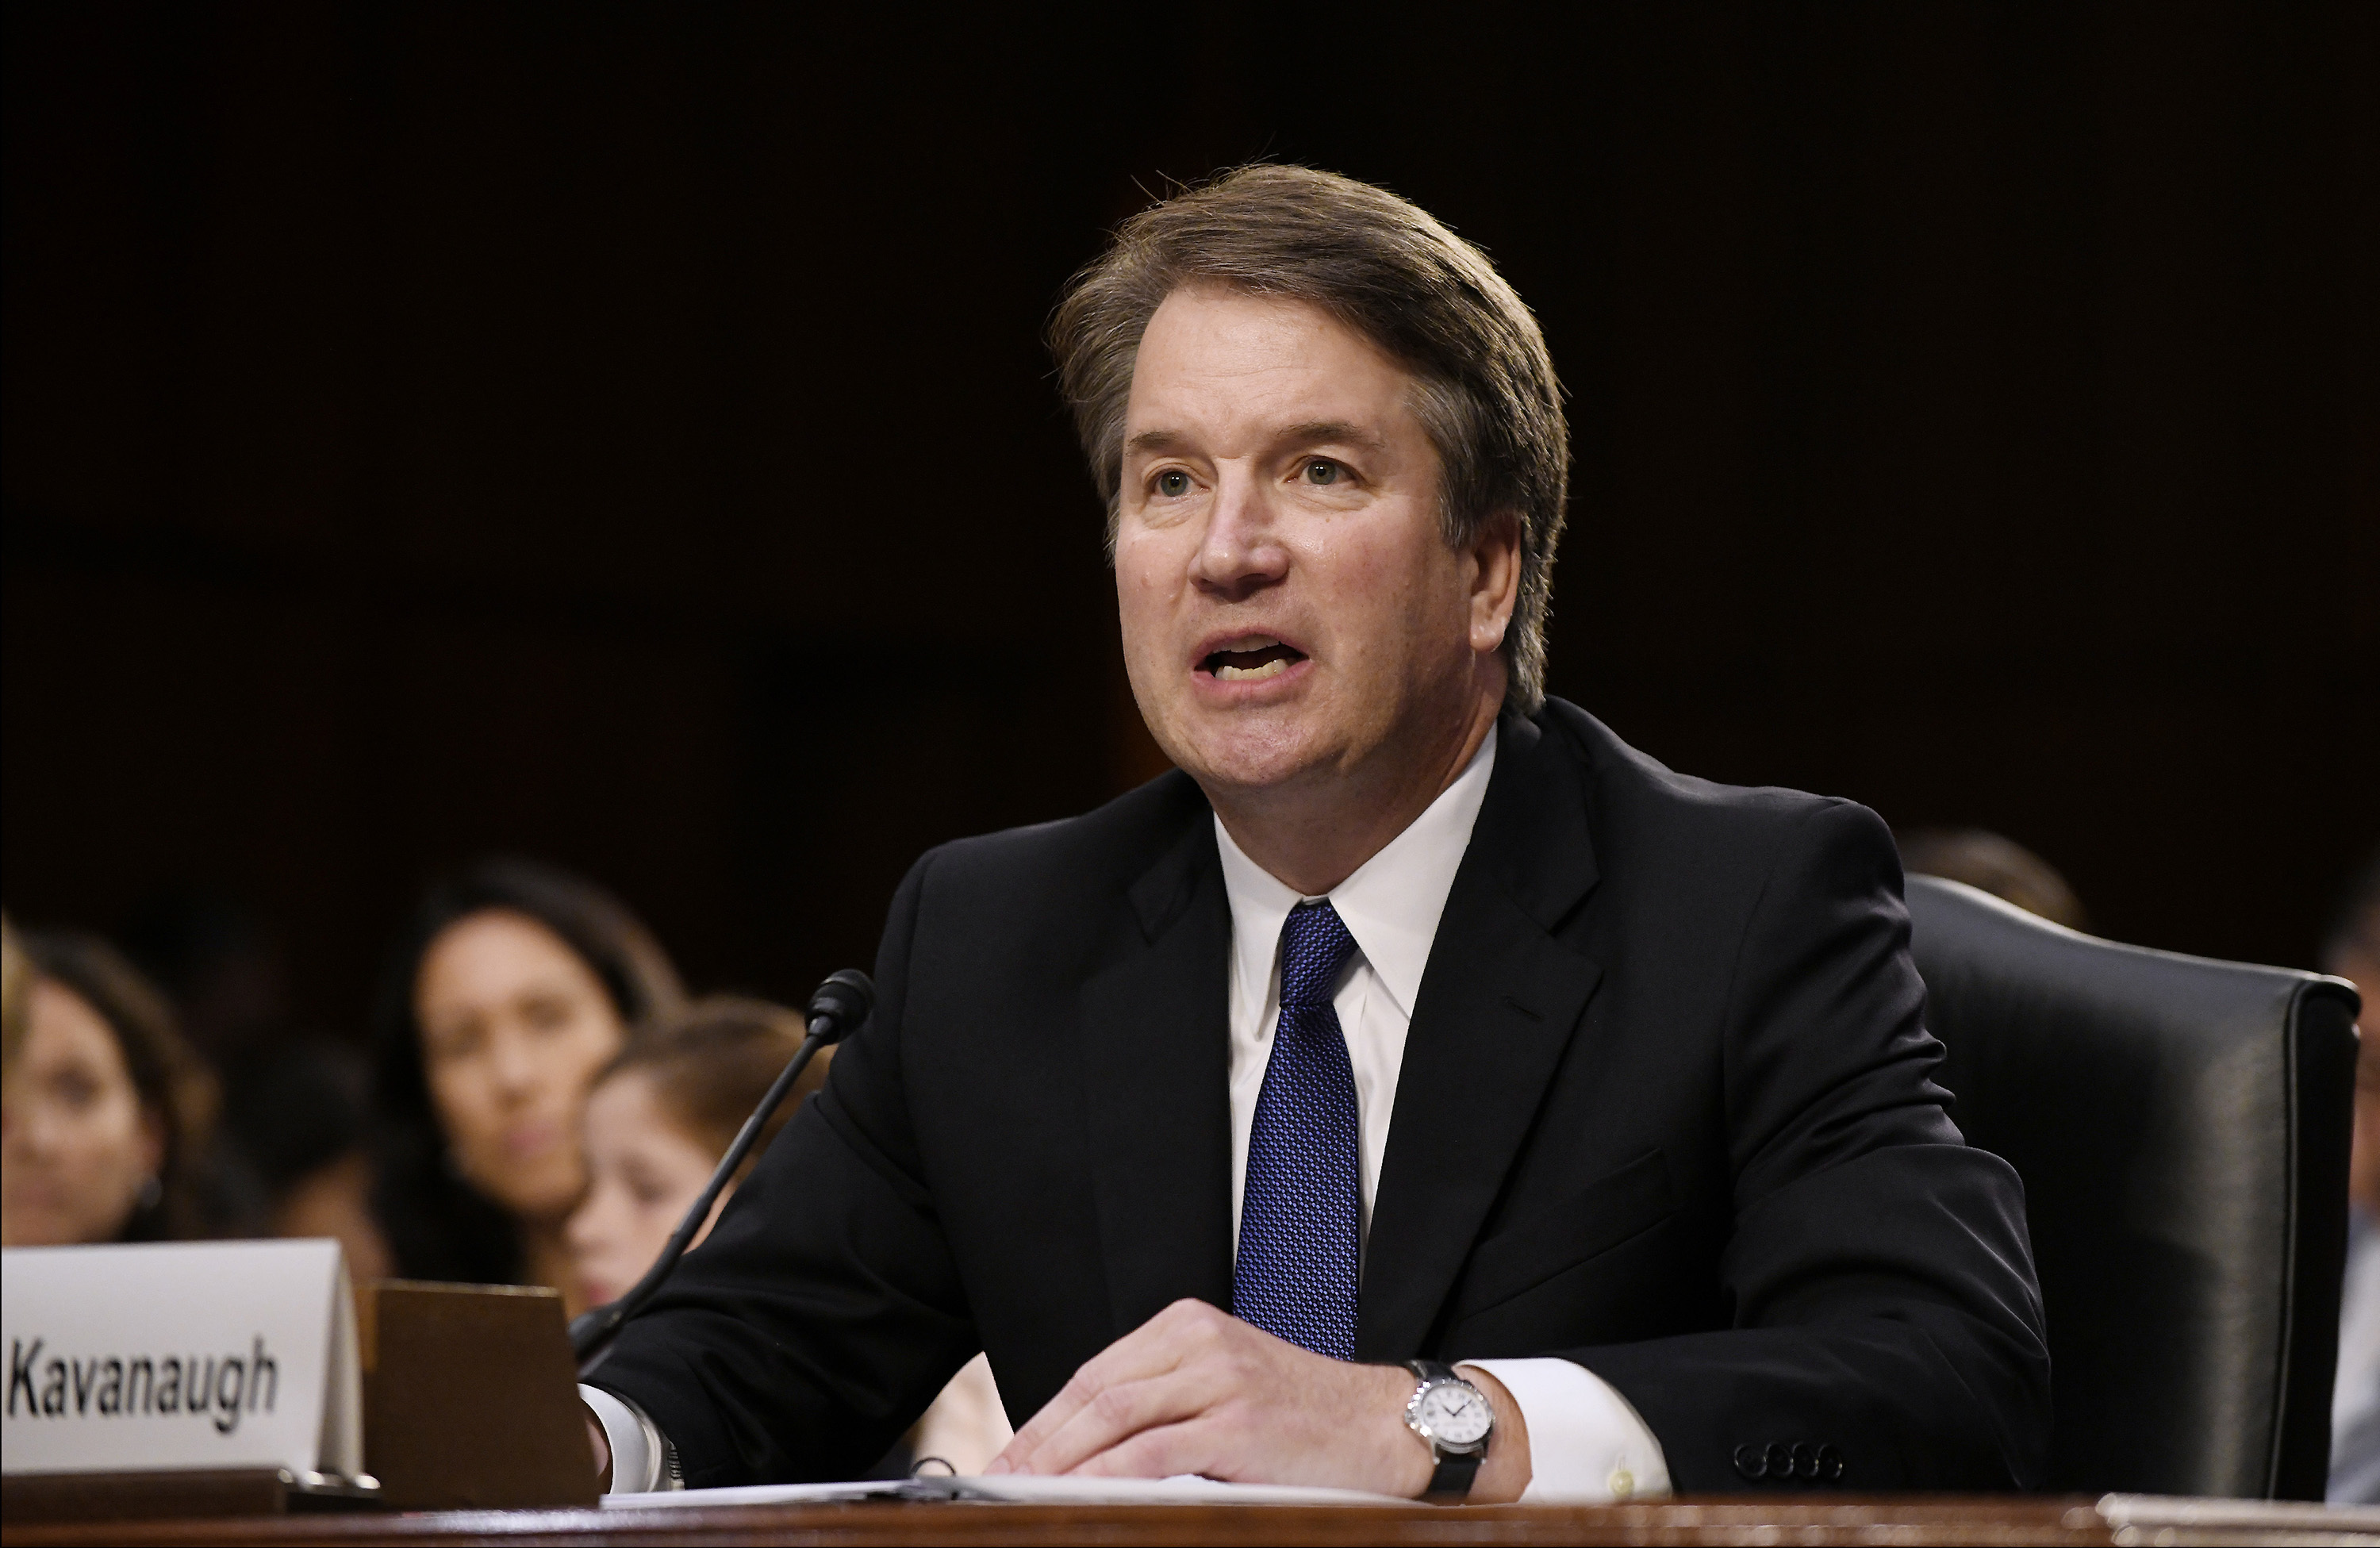 Supreme Court nominee Brett Kavanaugh testifies at his confirmation hearing in the Senate Judiciary Committee on Capitol Hill Sept. 4, 2018 in Washington, D.C.